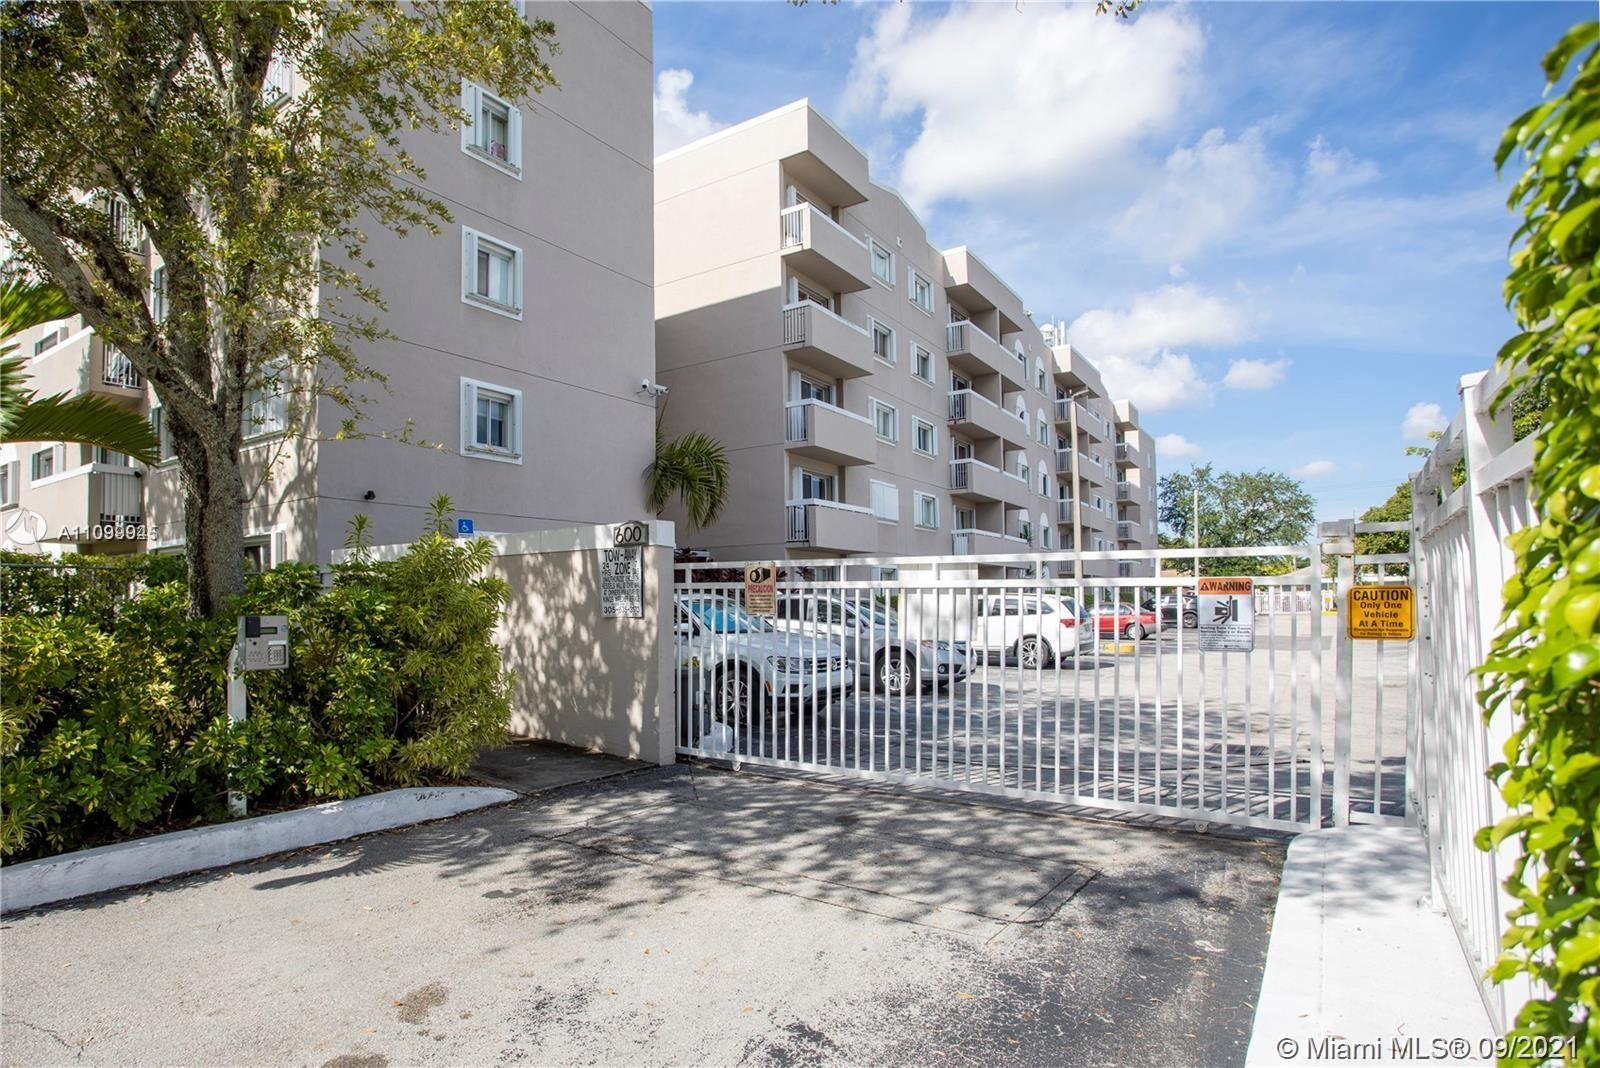 600 NW 32nd Pl #317, Miami, FL 33125 - #: A11099945